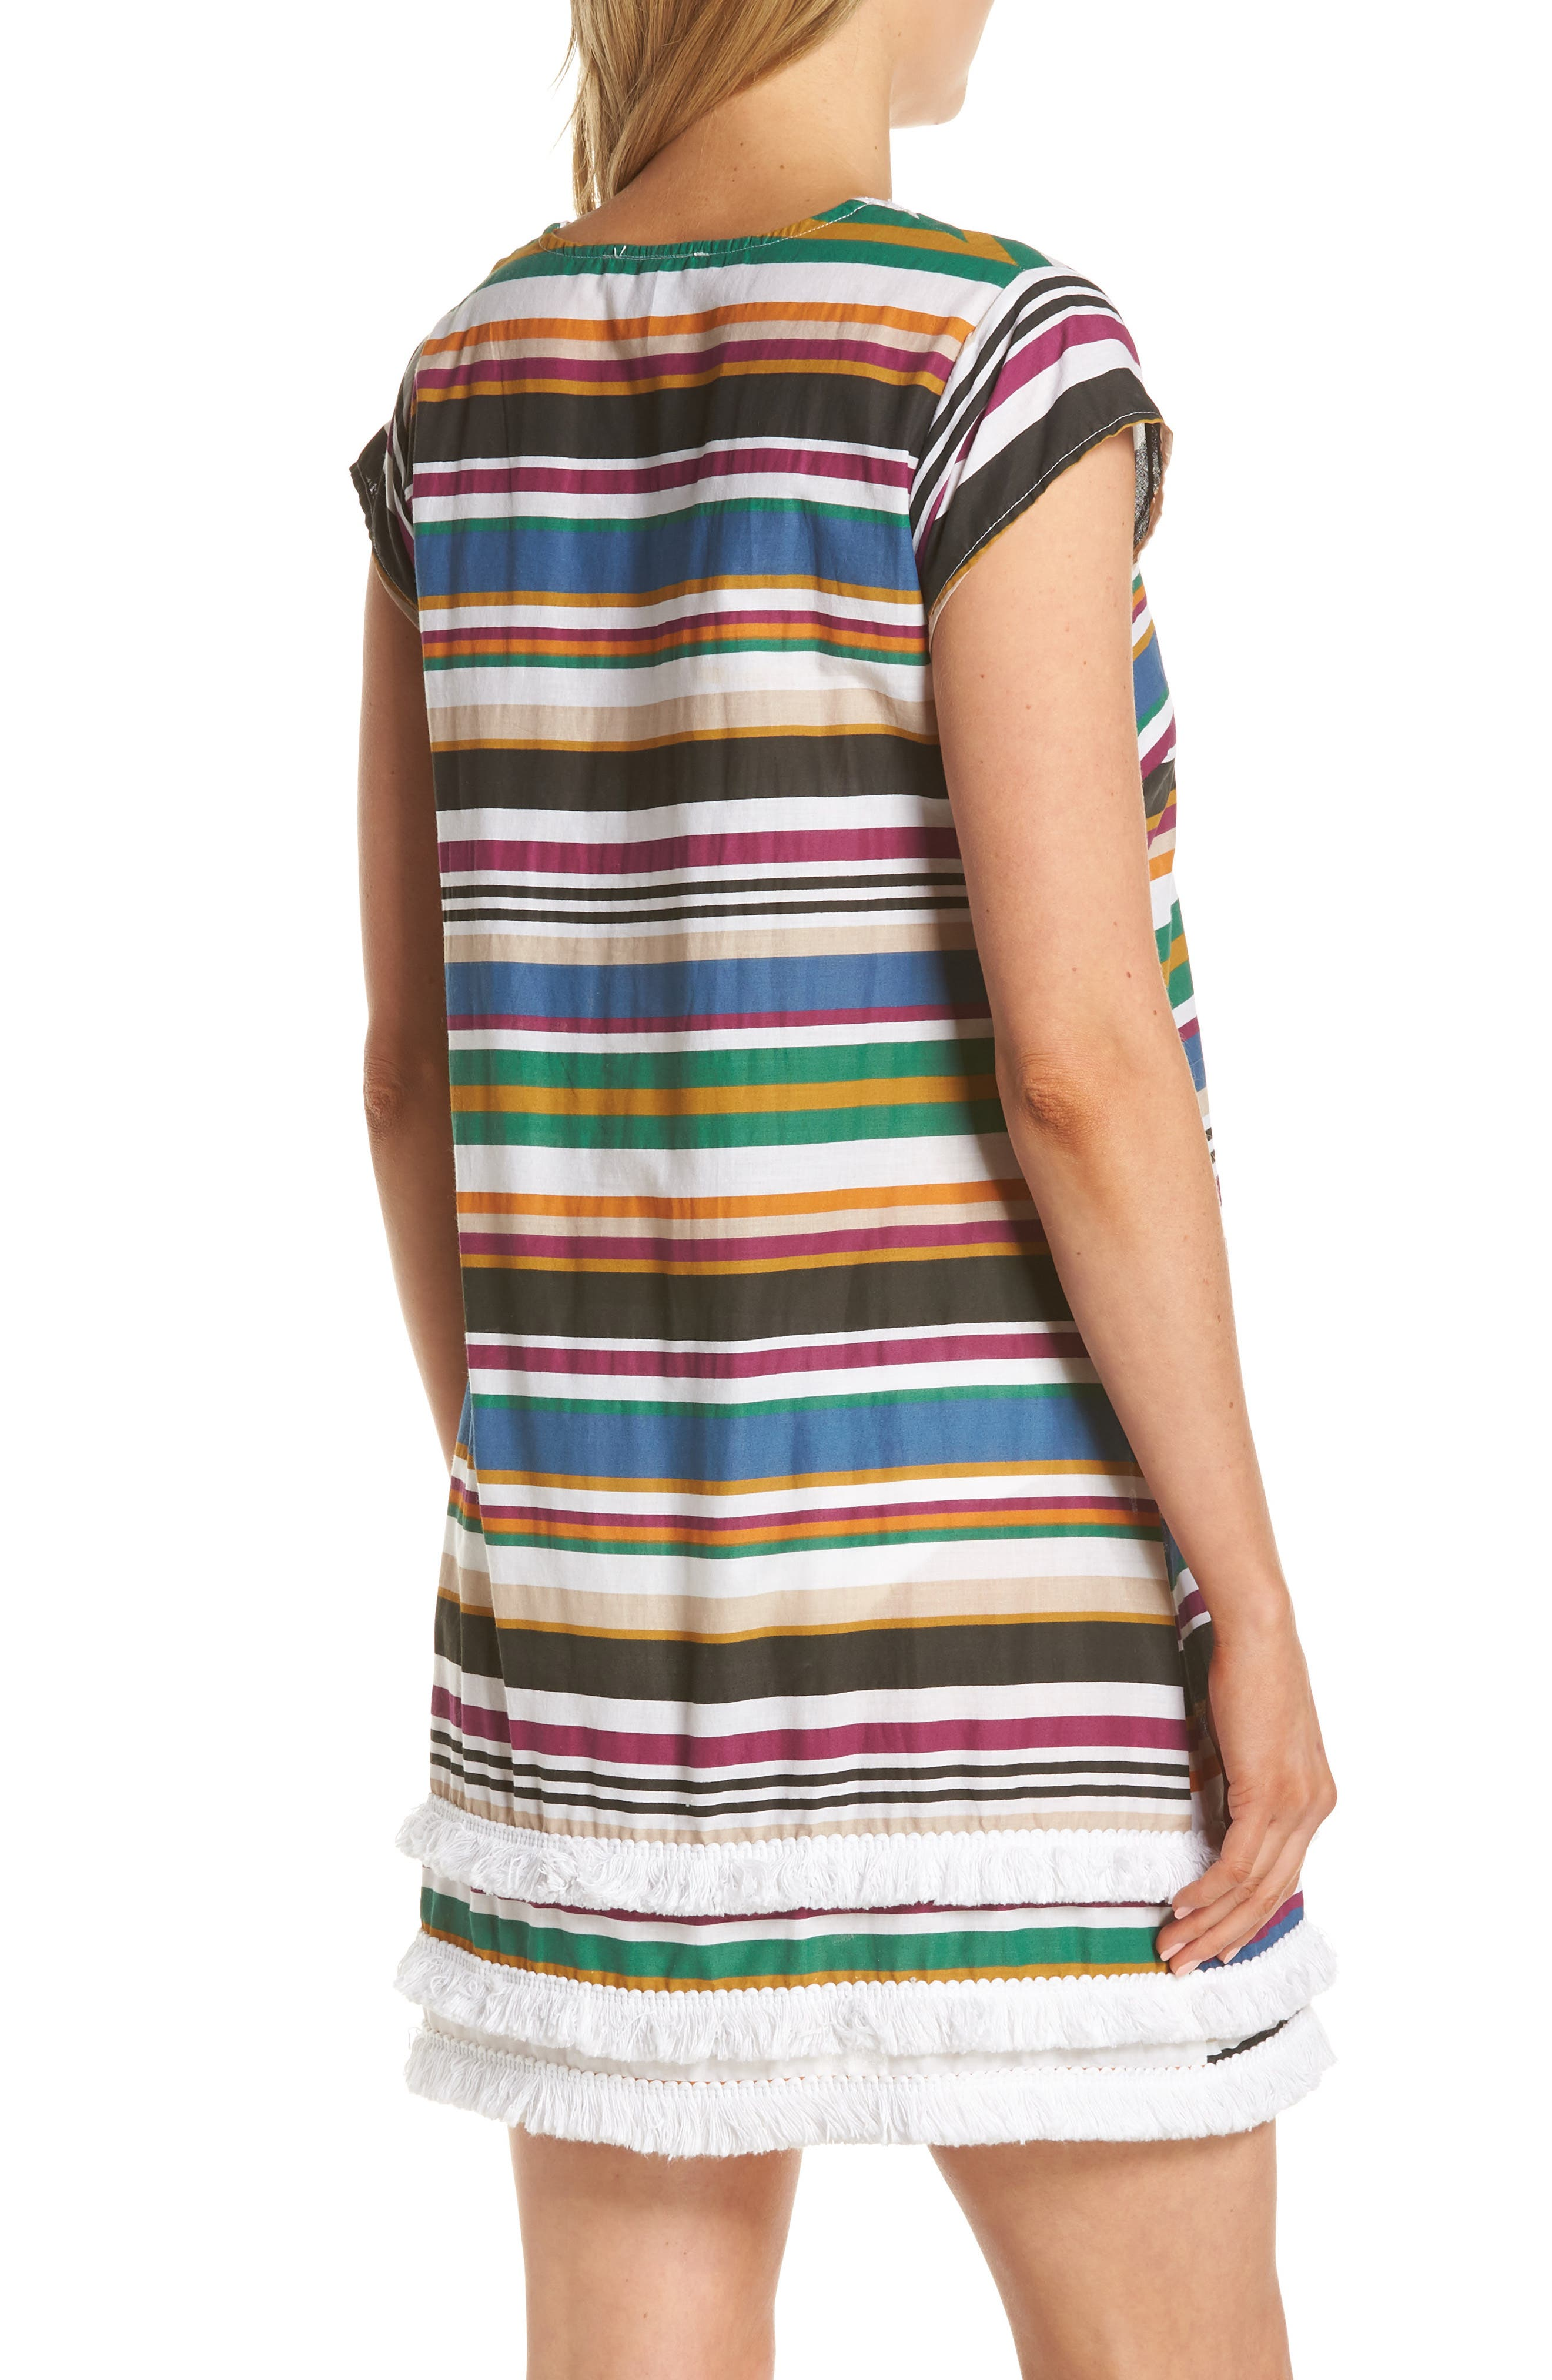 BLEU BY ROD BEATTIE,                             Under Cover Stripe Cover-Up Dress,                             Alternate thumbnail 2, color,                             NAVY/ NEUTRAL